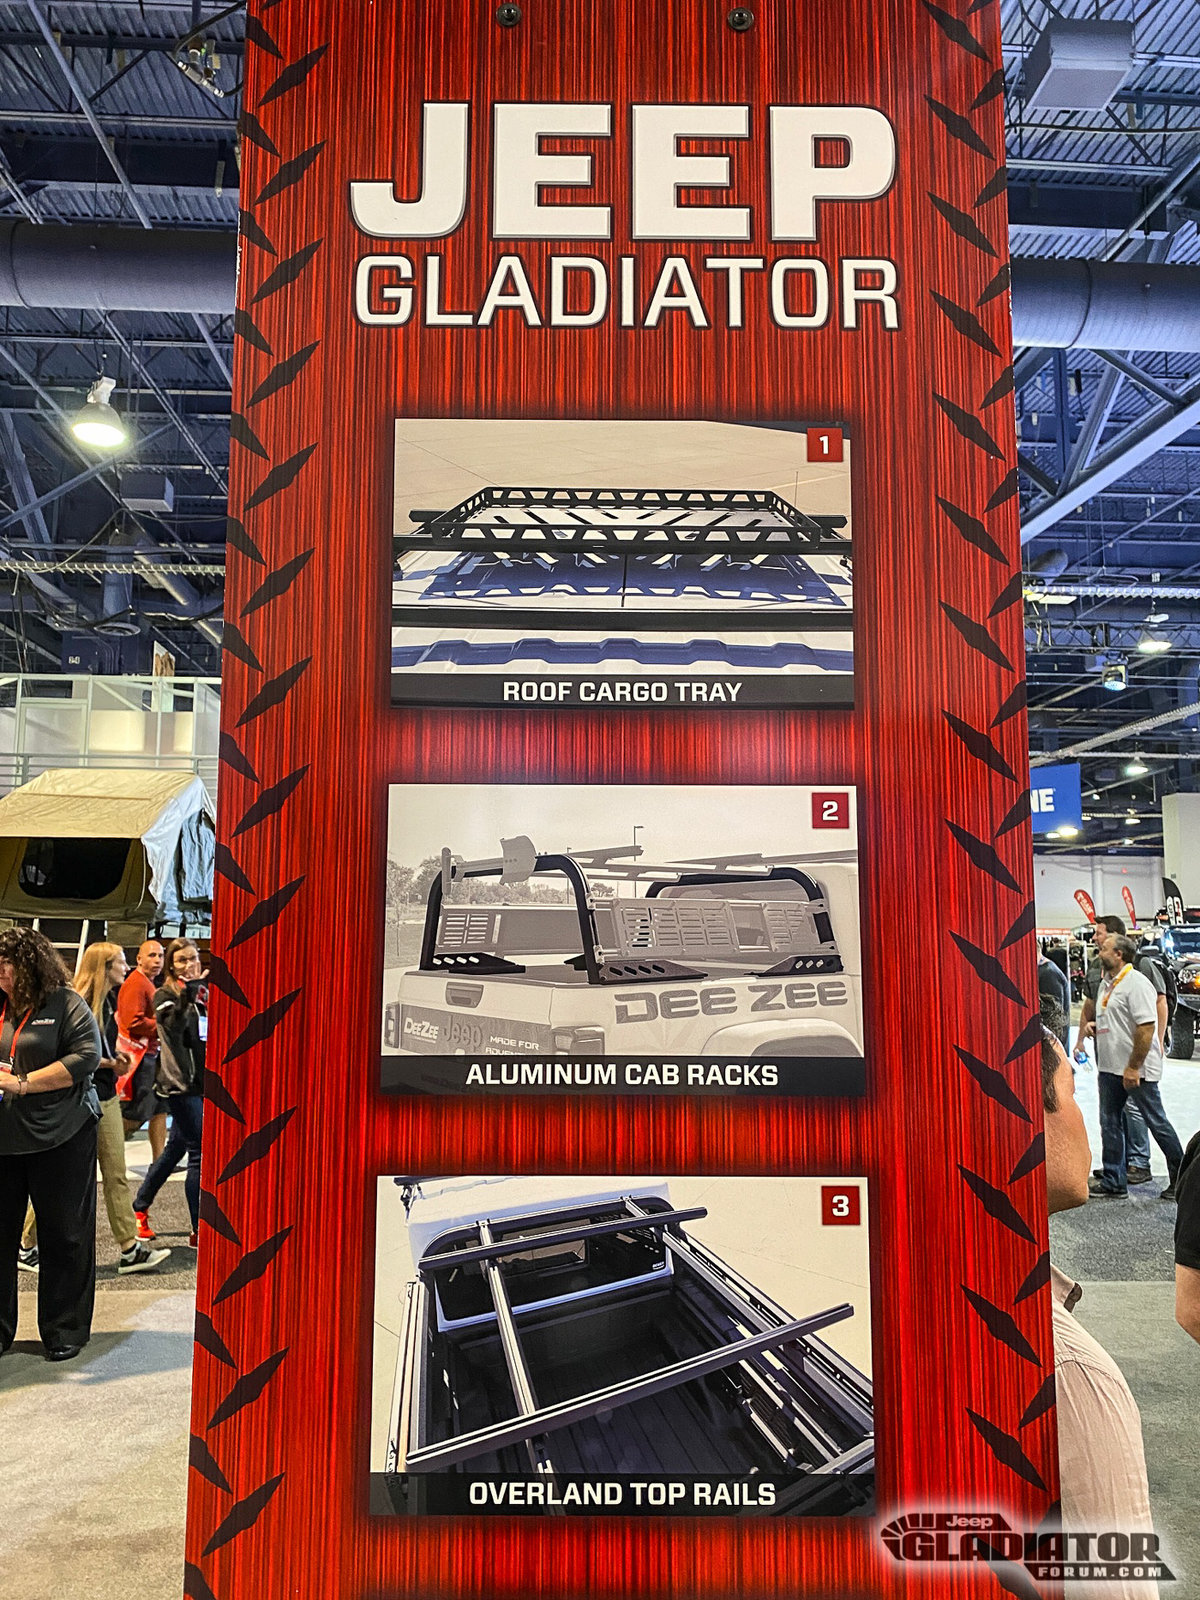 DeeZee-Gladiator-Build-SEMA-2019-21.jpg